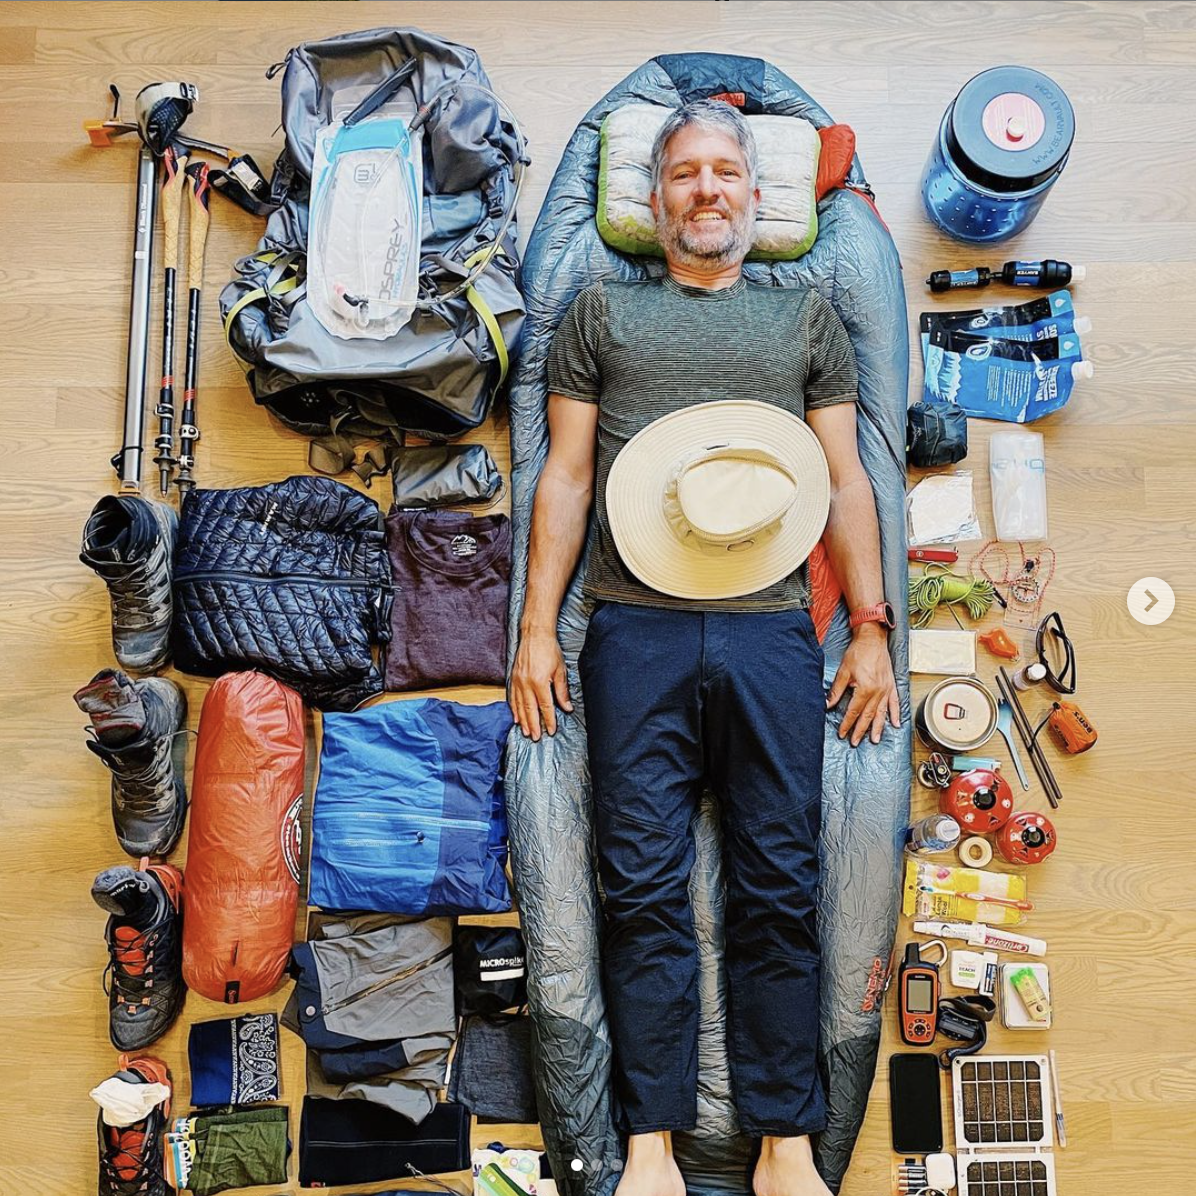 Tom has gathered all his gear and is ready for his trip!